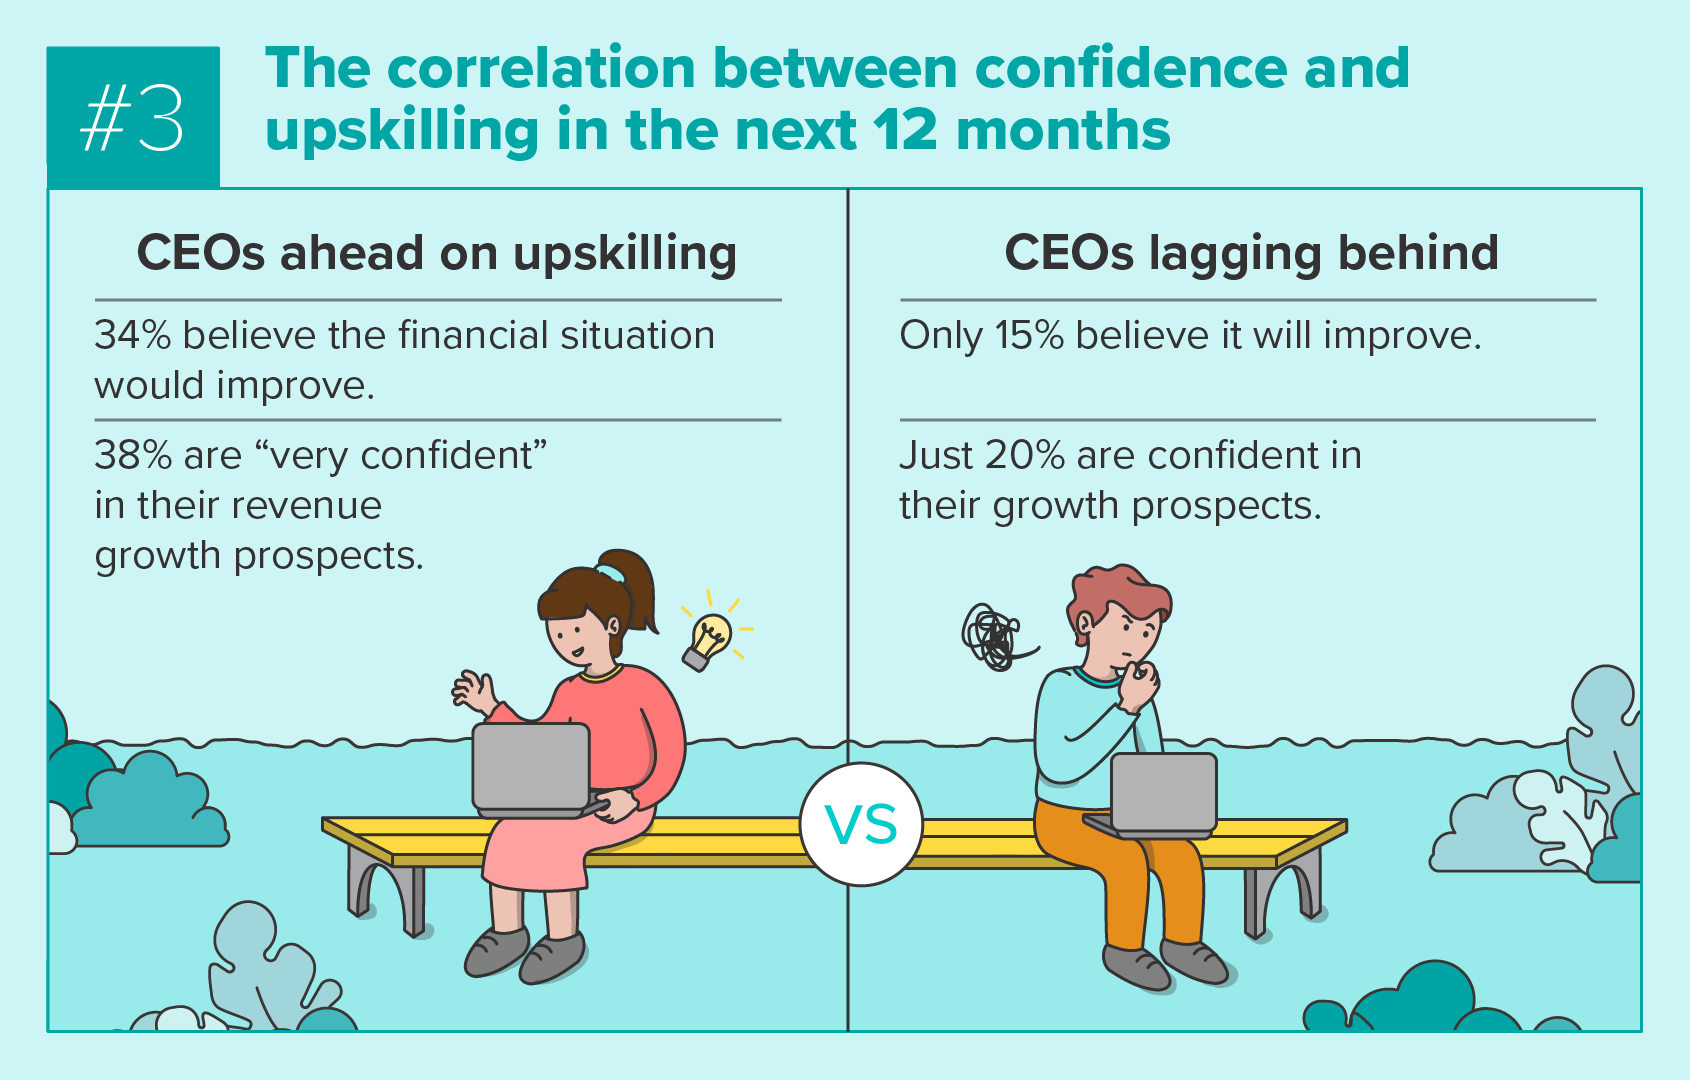 Comparing CEOs who are ahead or lagging behind in upskilling